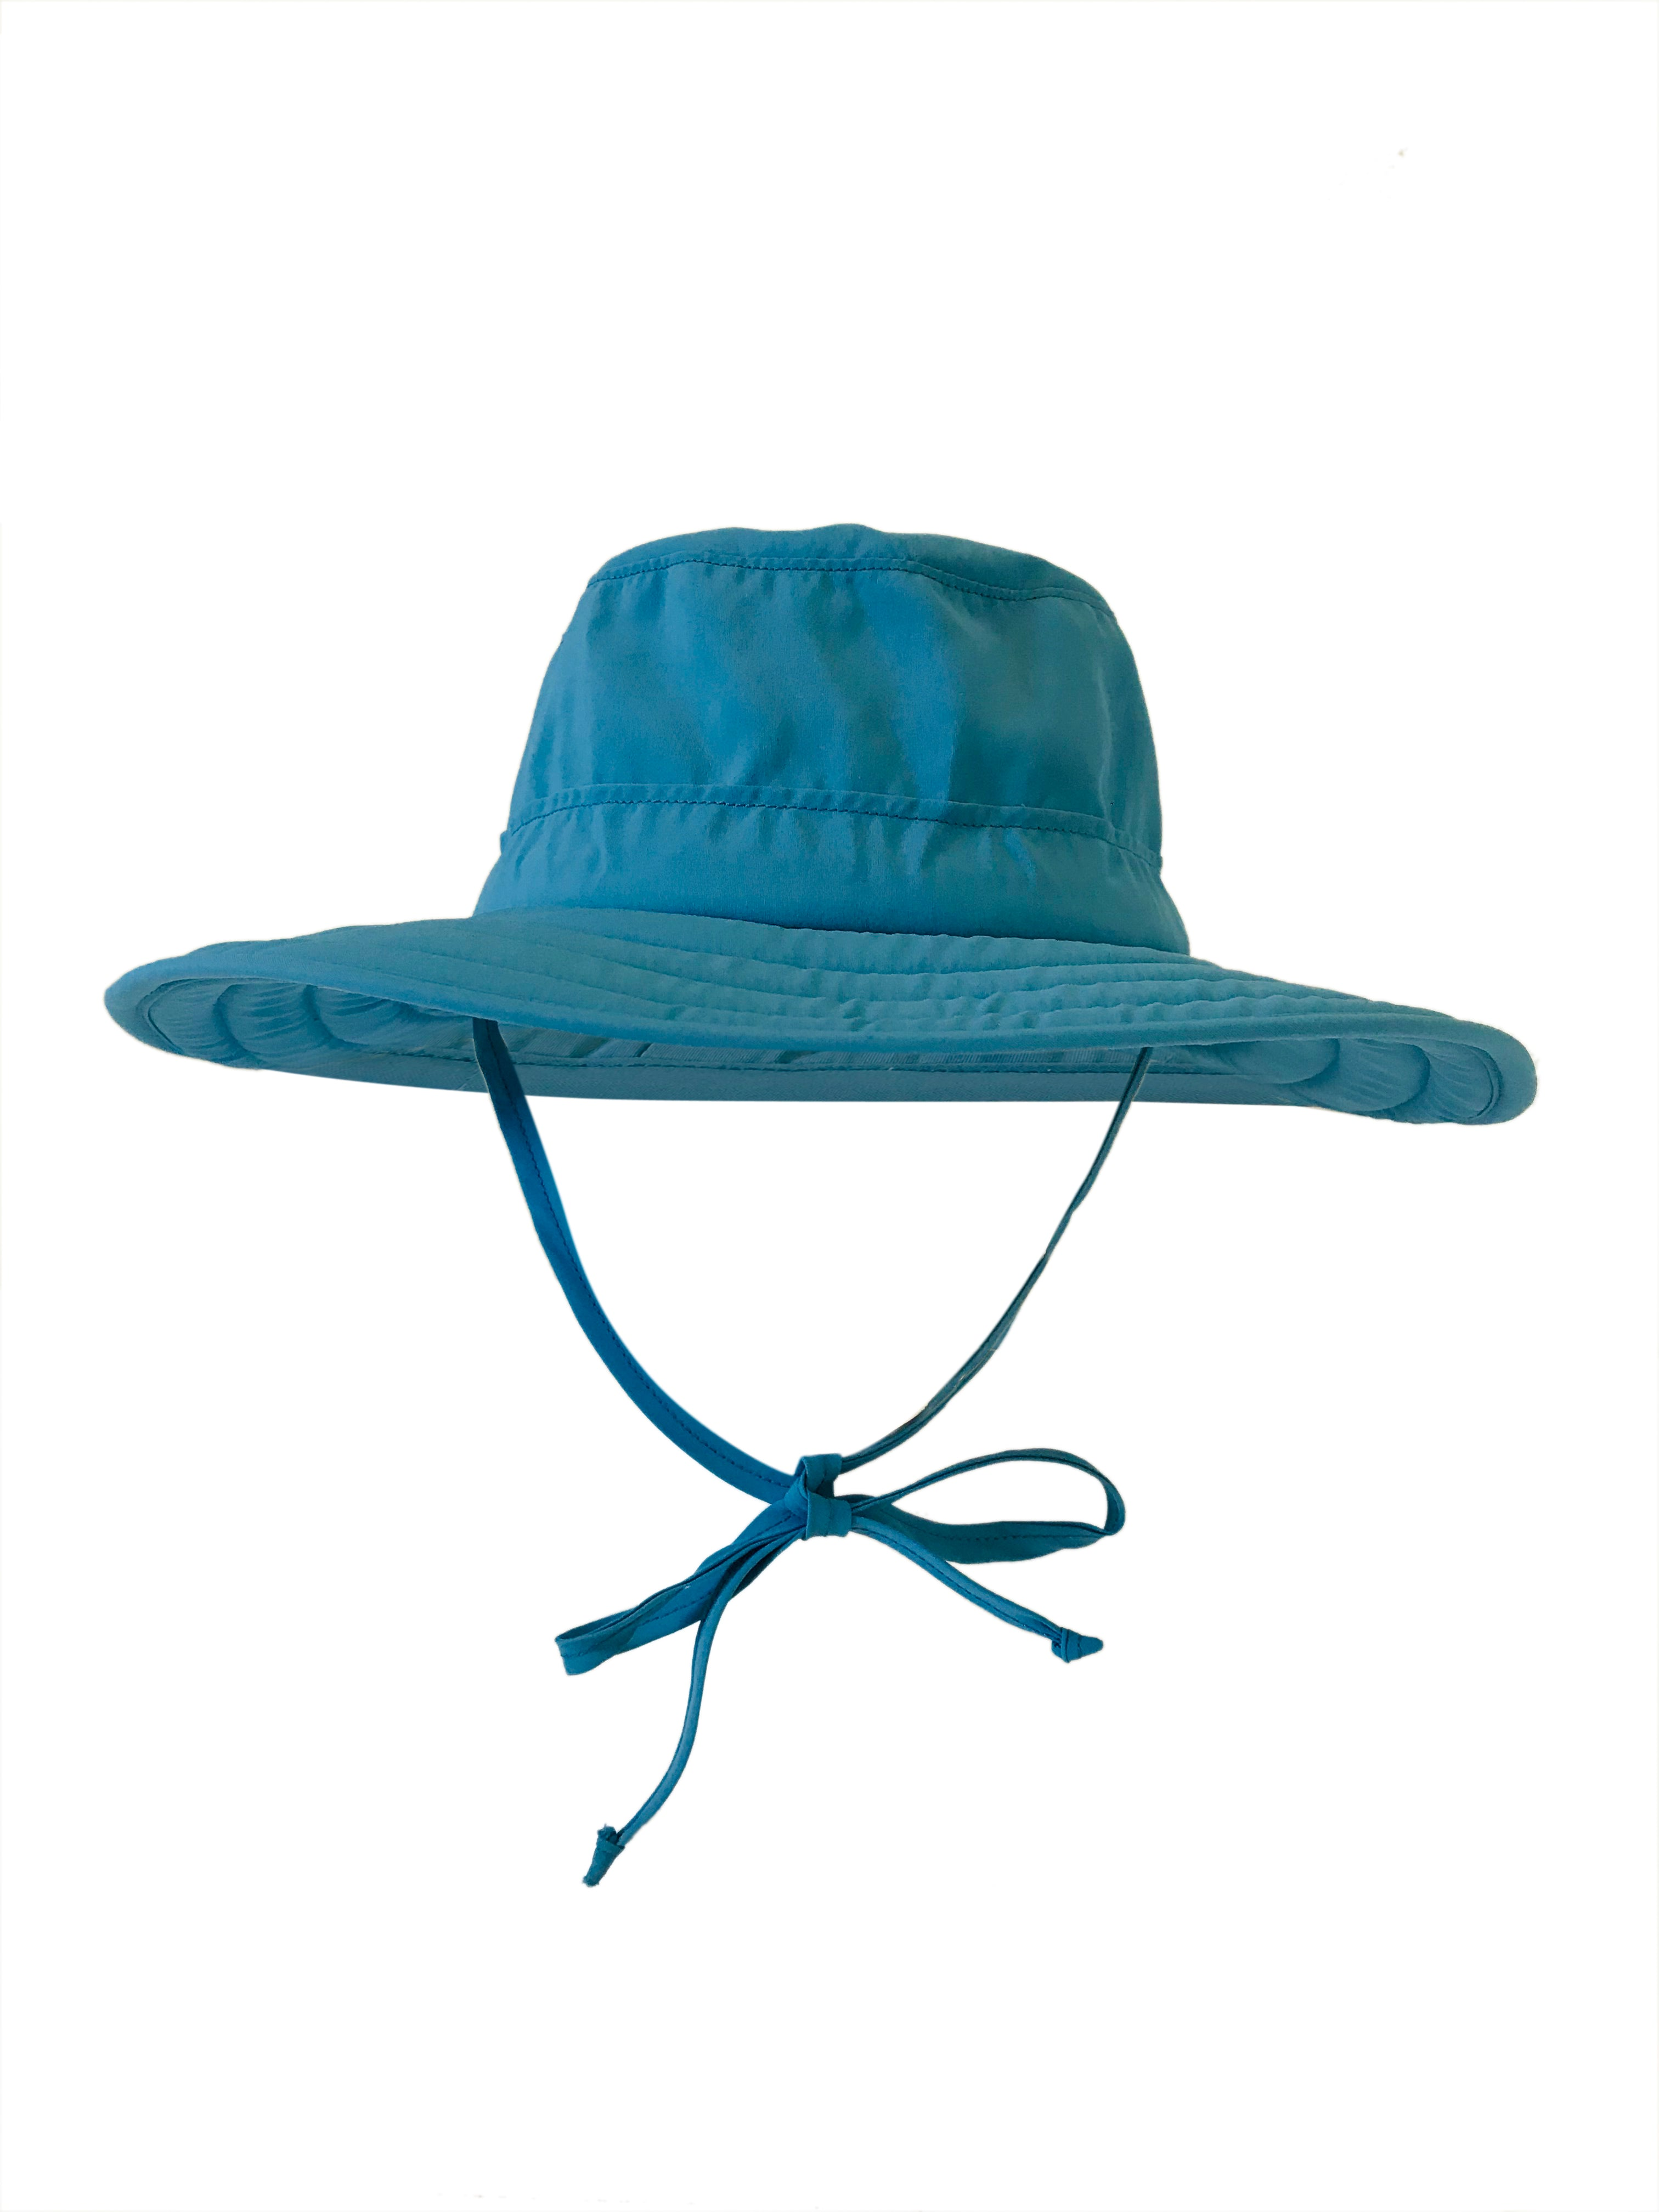 ZeuKnLu Niagara Sun Hat without removable liner front view